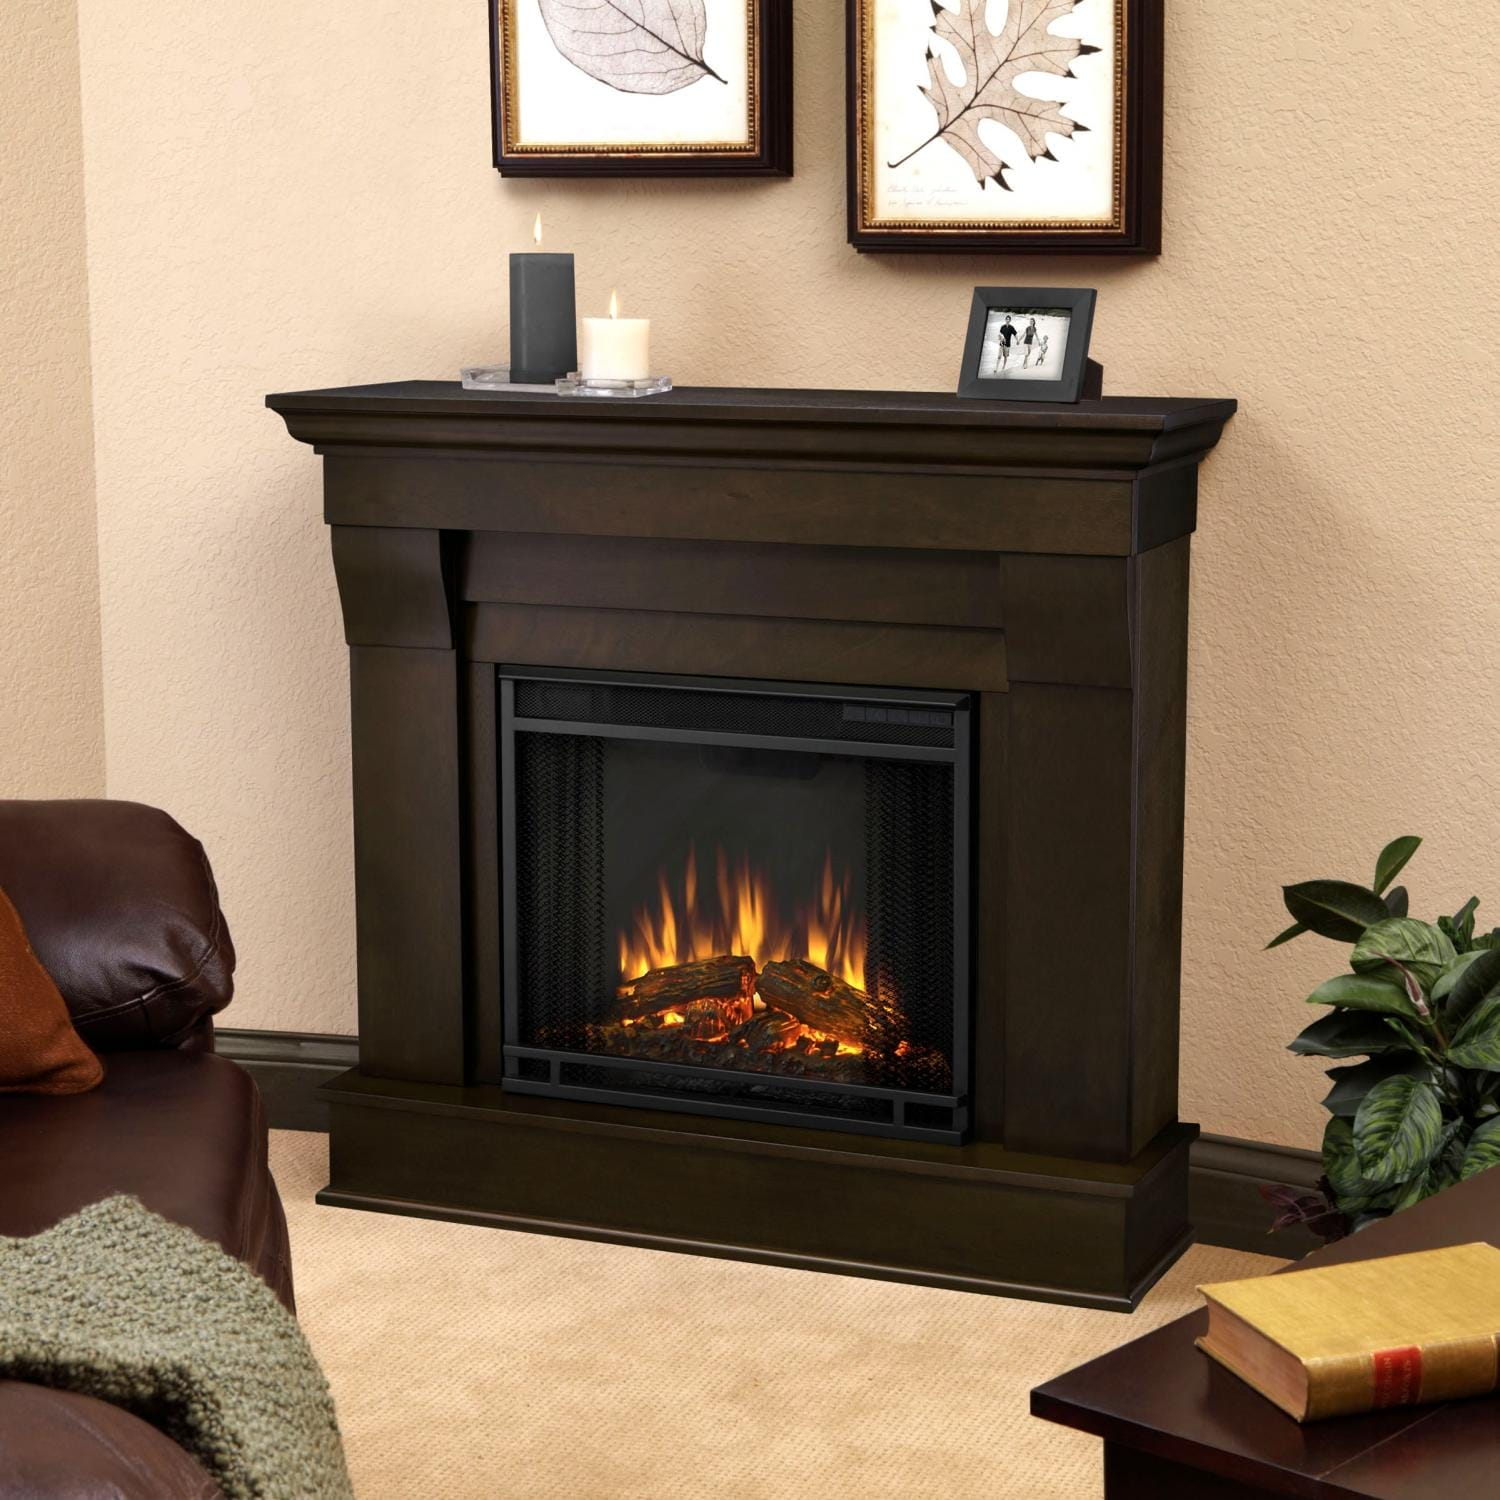 The Chateau Fireplace features the clean lines and classic styling familiar to stone mantels